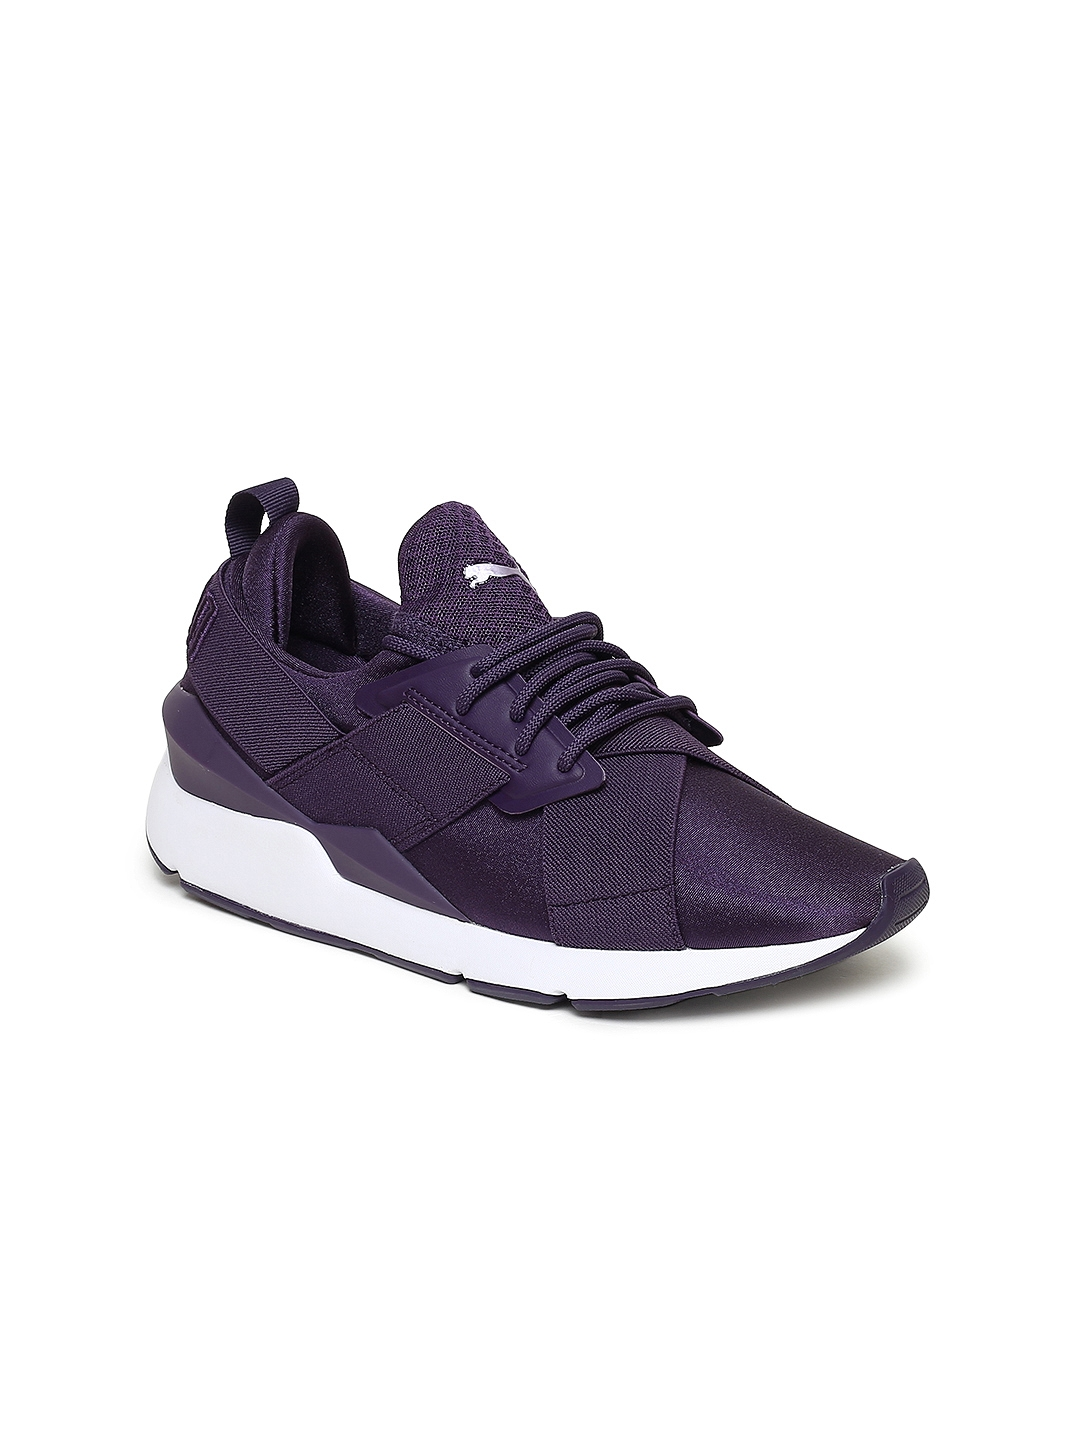 924fc5efc073 Buy Puma Women Purple Muse Satin EP Sneakers - Casual Shoes for ...